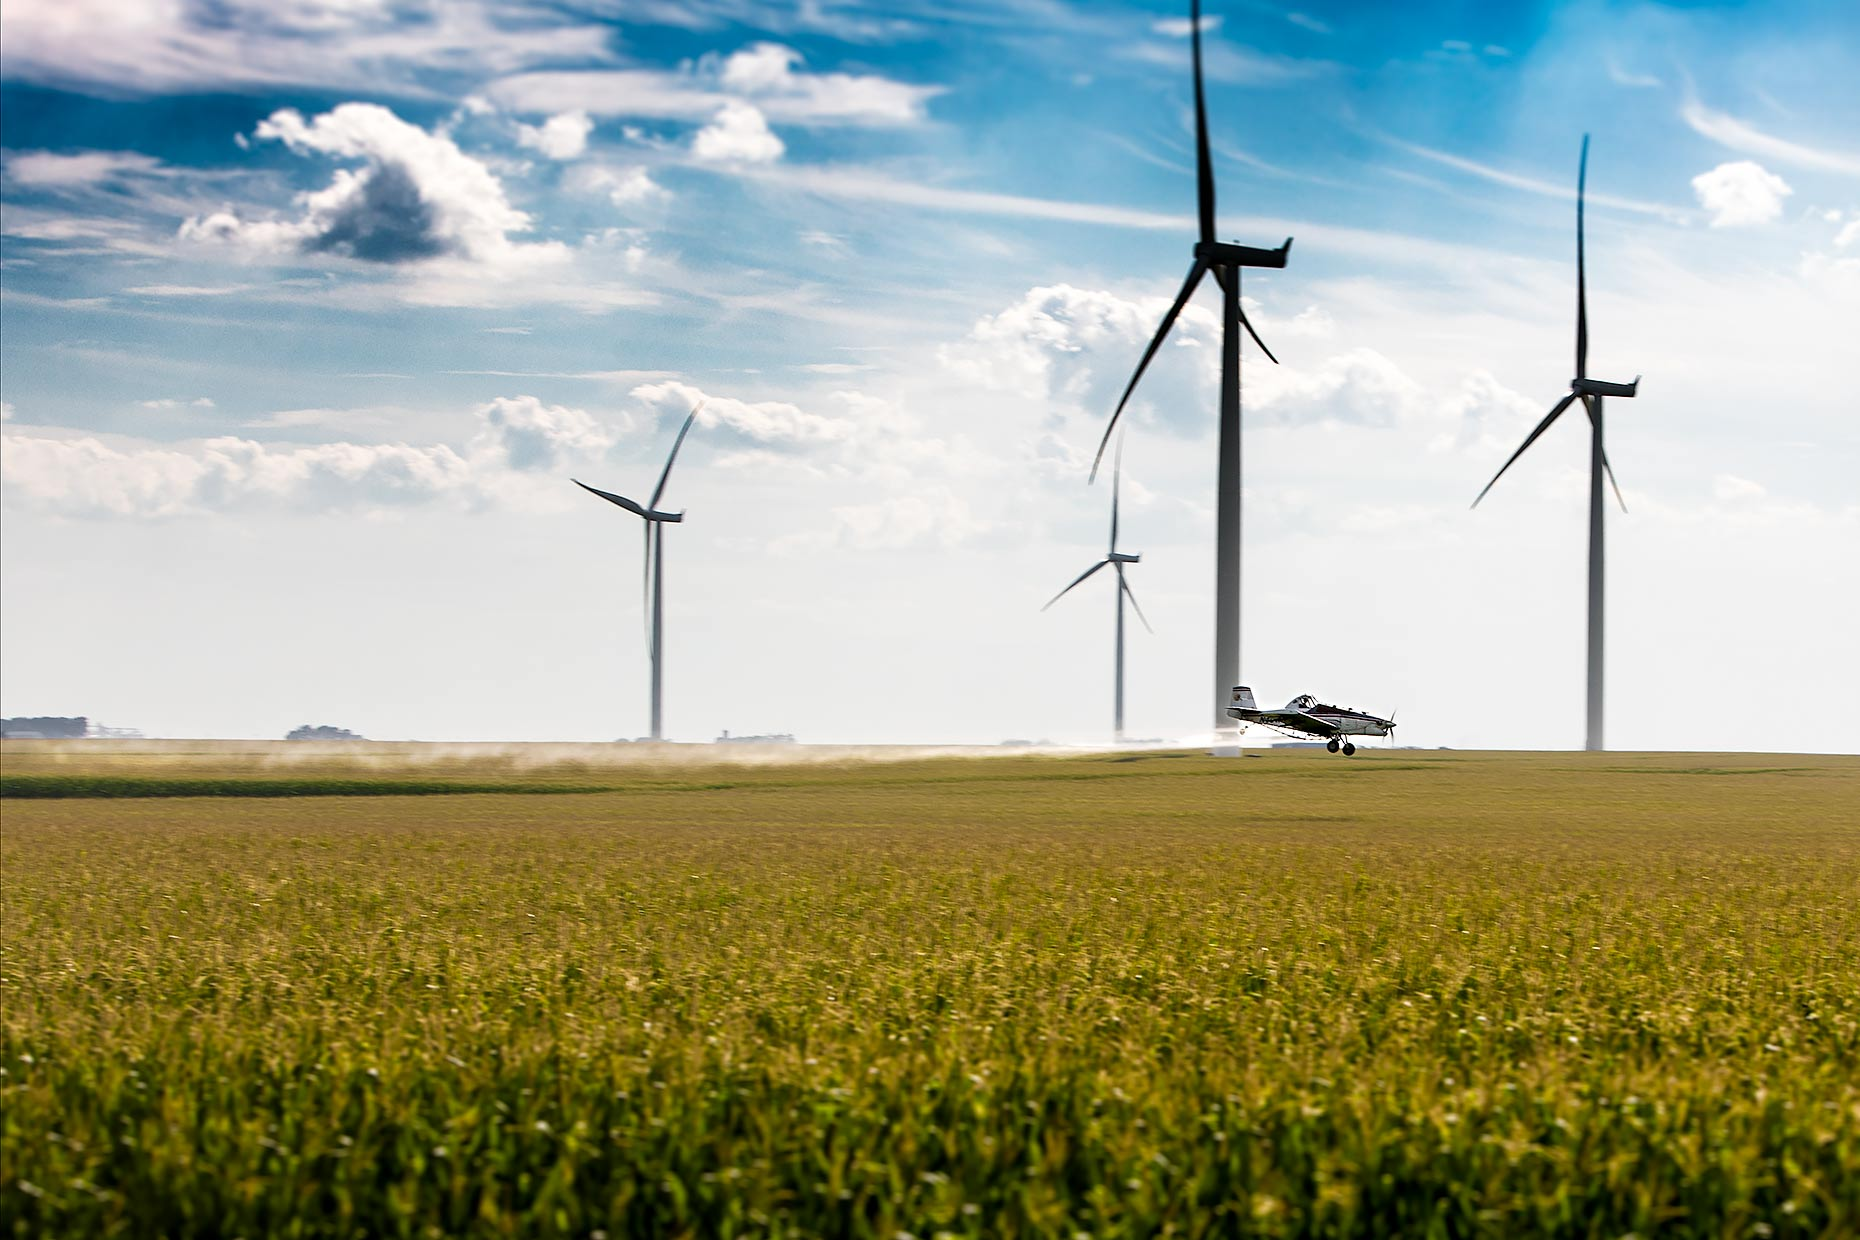 A crop duster flies over a corn field with wind turbines above | Scott Gable industrial photographer